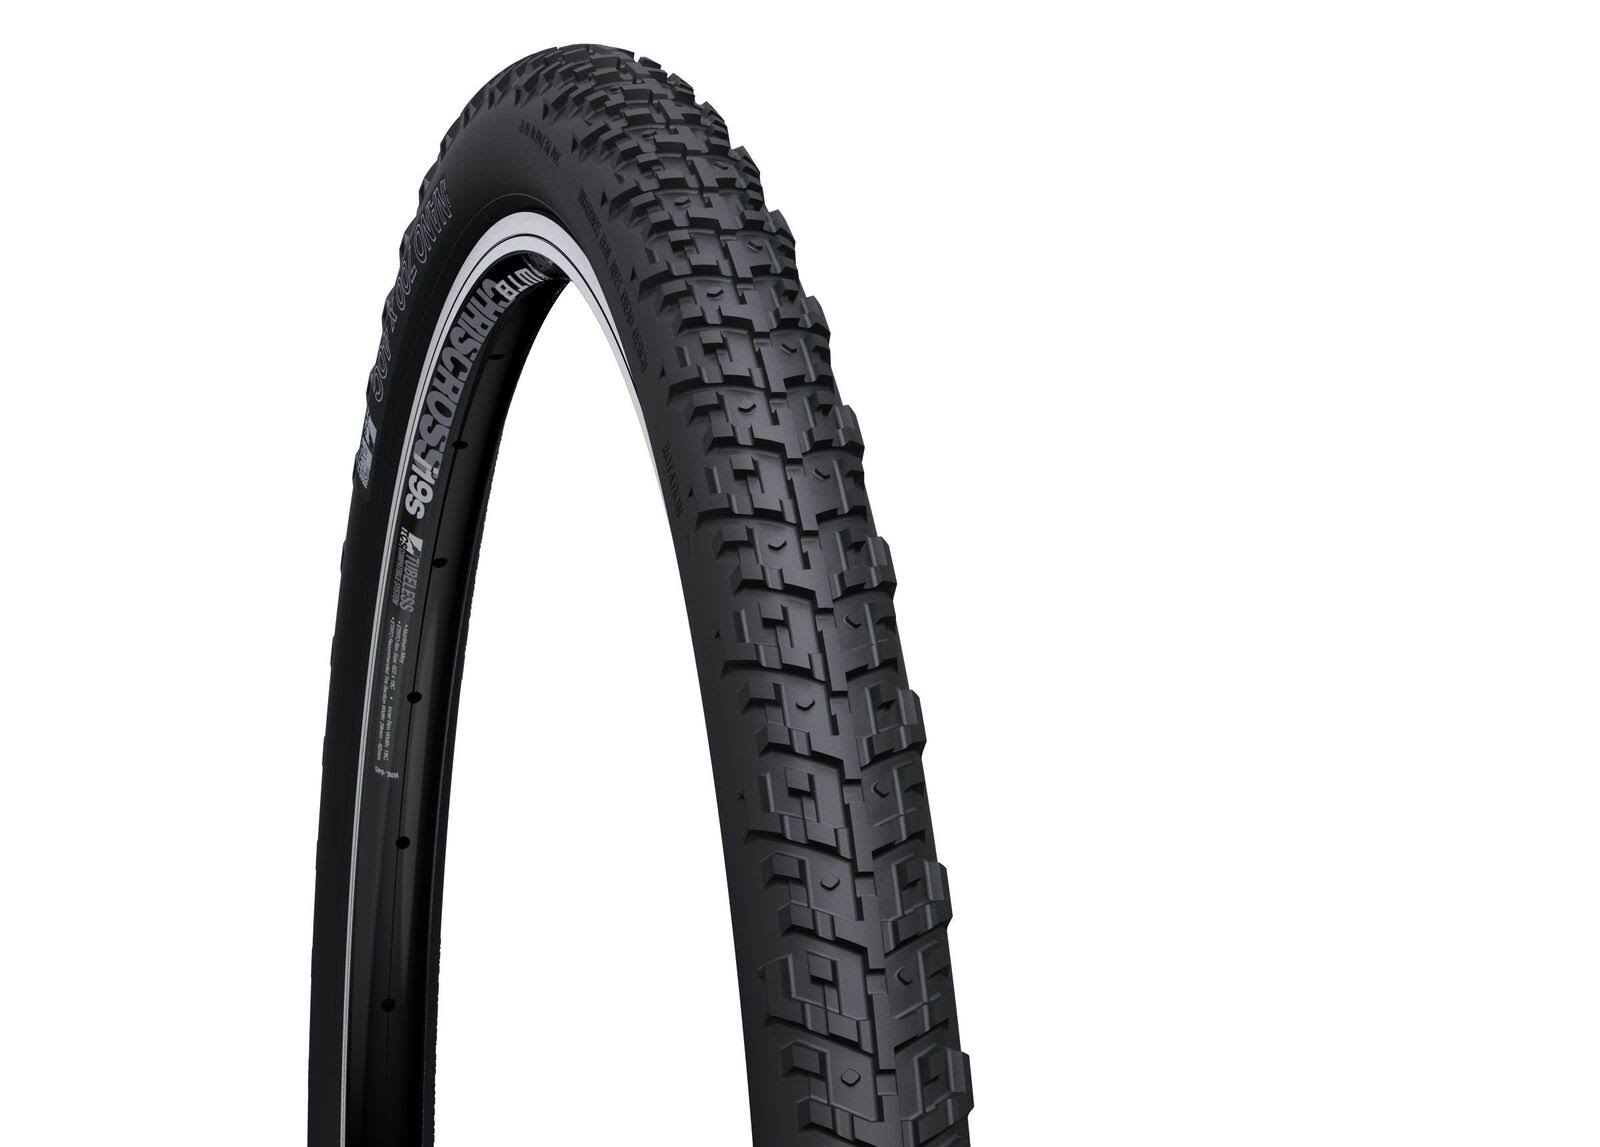 Wtb Nano Race Cross Mountain Gravel Trail Bicycle Tire - Black, 700 x 40c